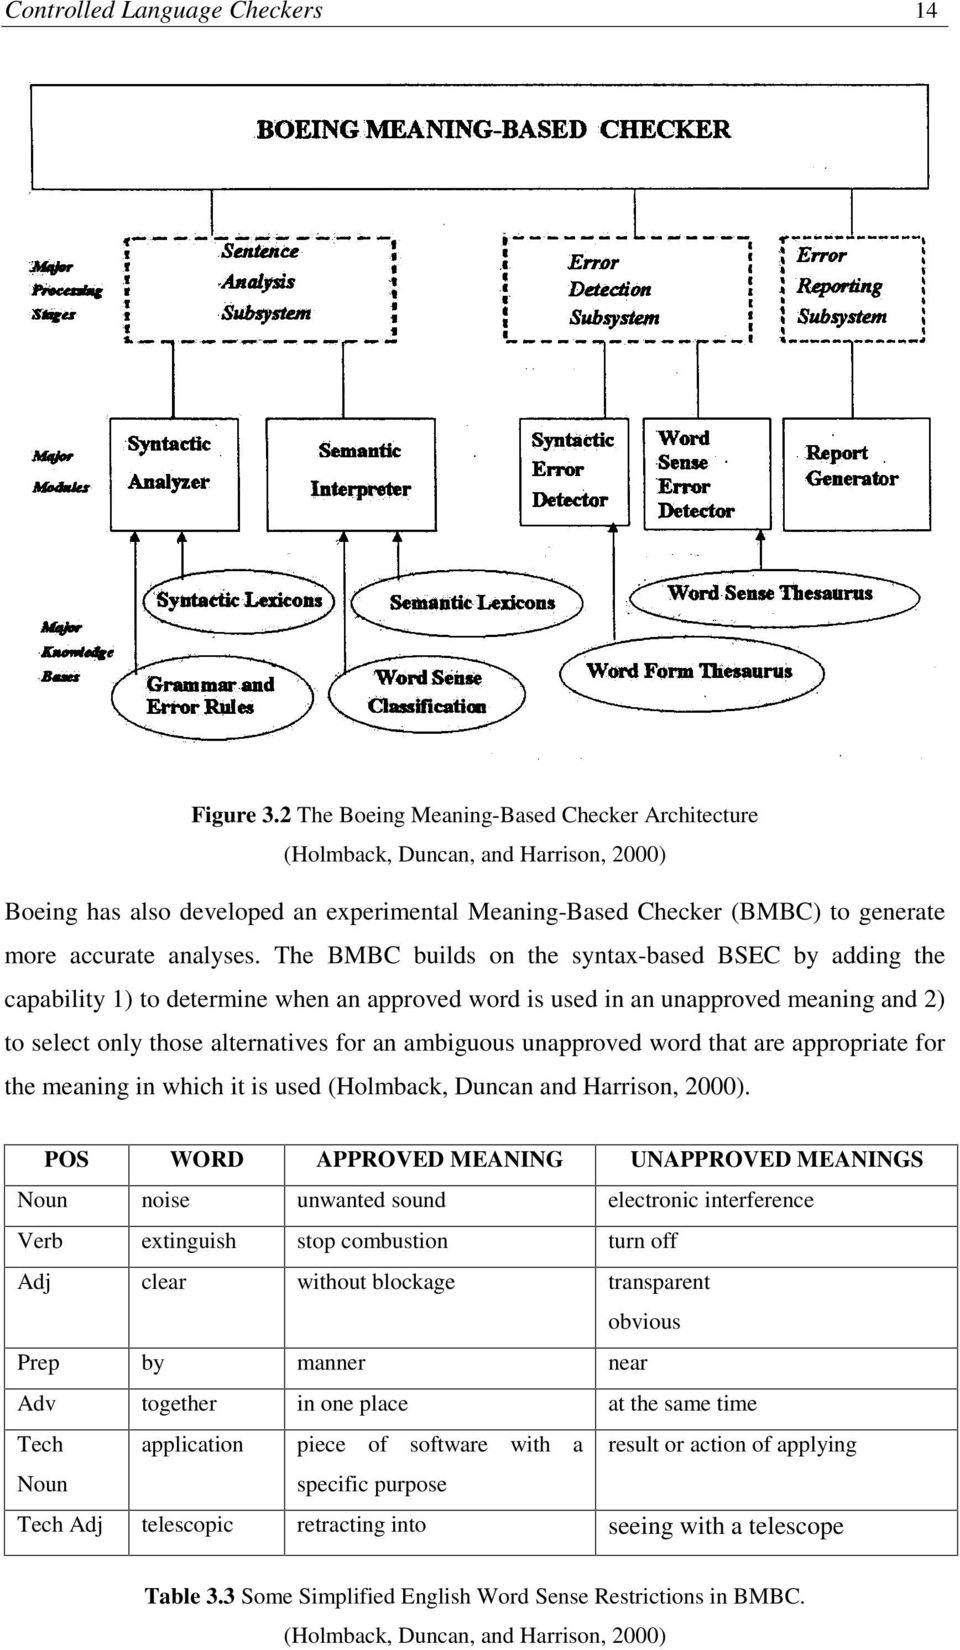 The BMBC builds on the syntax-based BSEC by adding the capability 1) to determine when an approved word is used in an unapproved meaning and 2) to select only those alternatives for an ambiguous